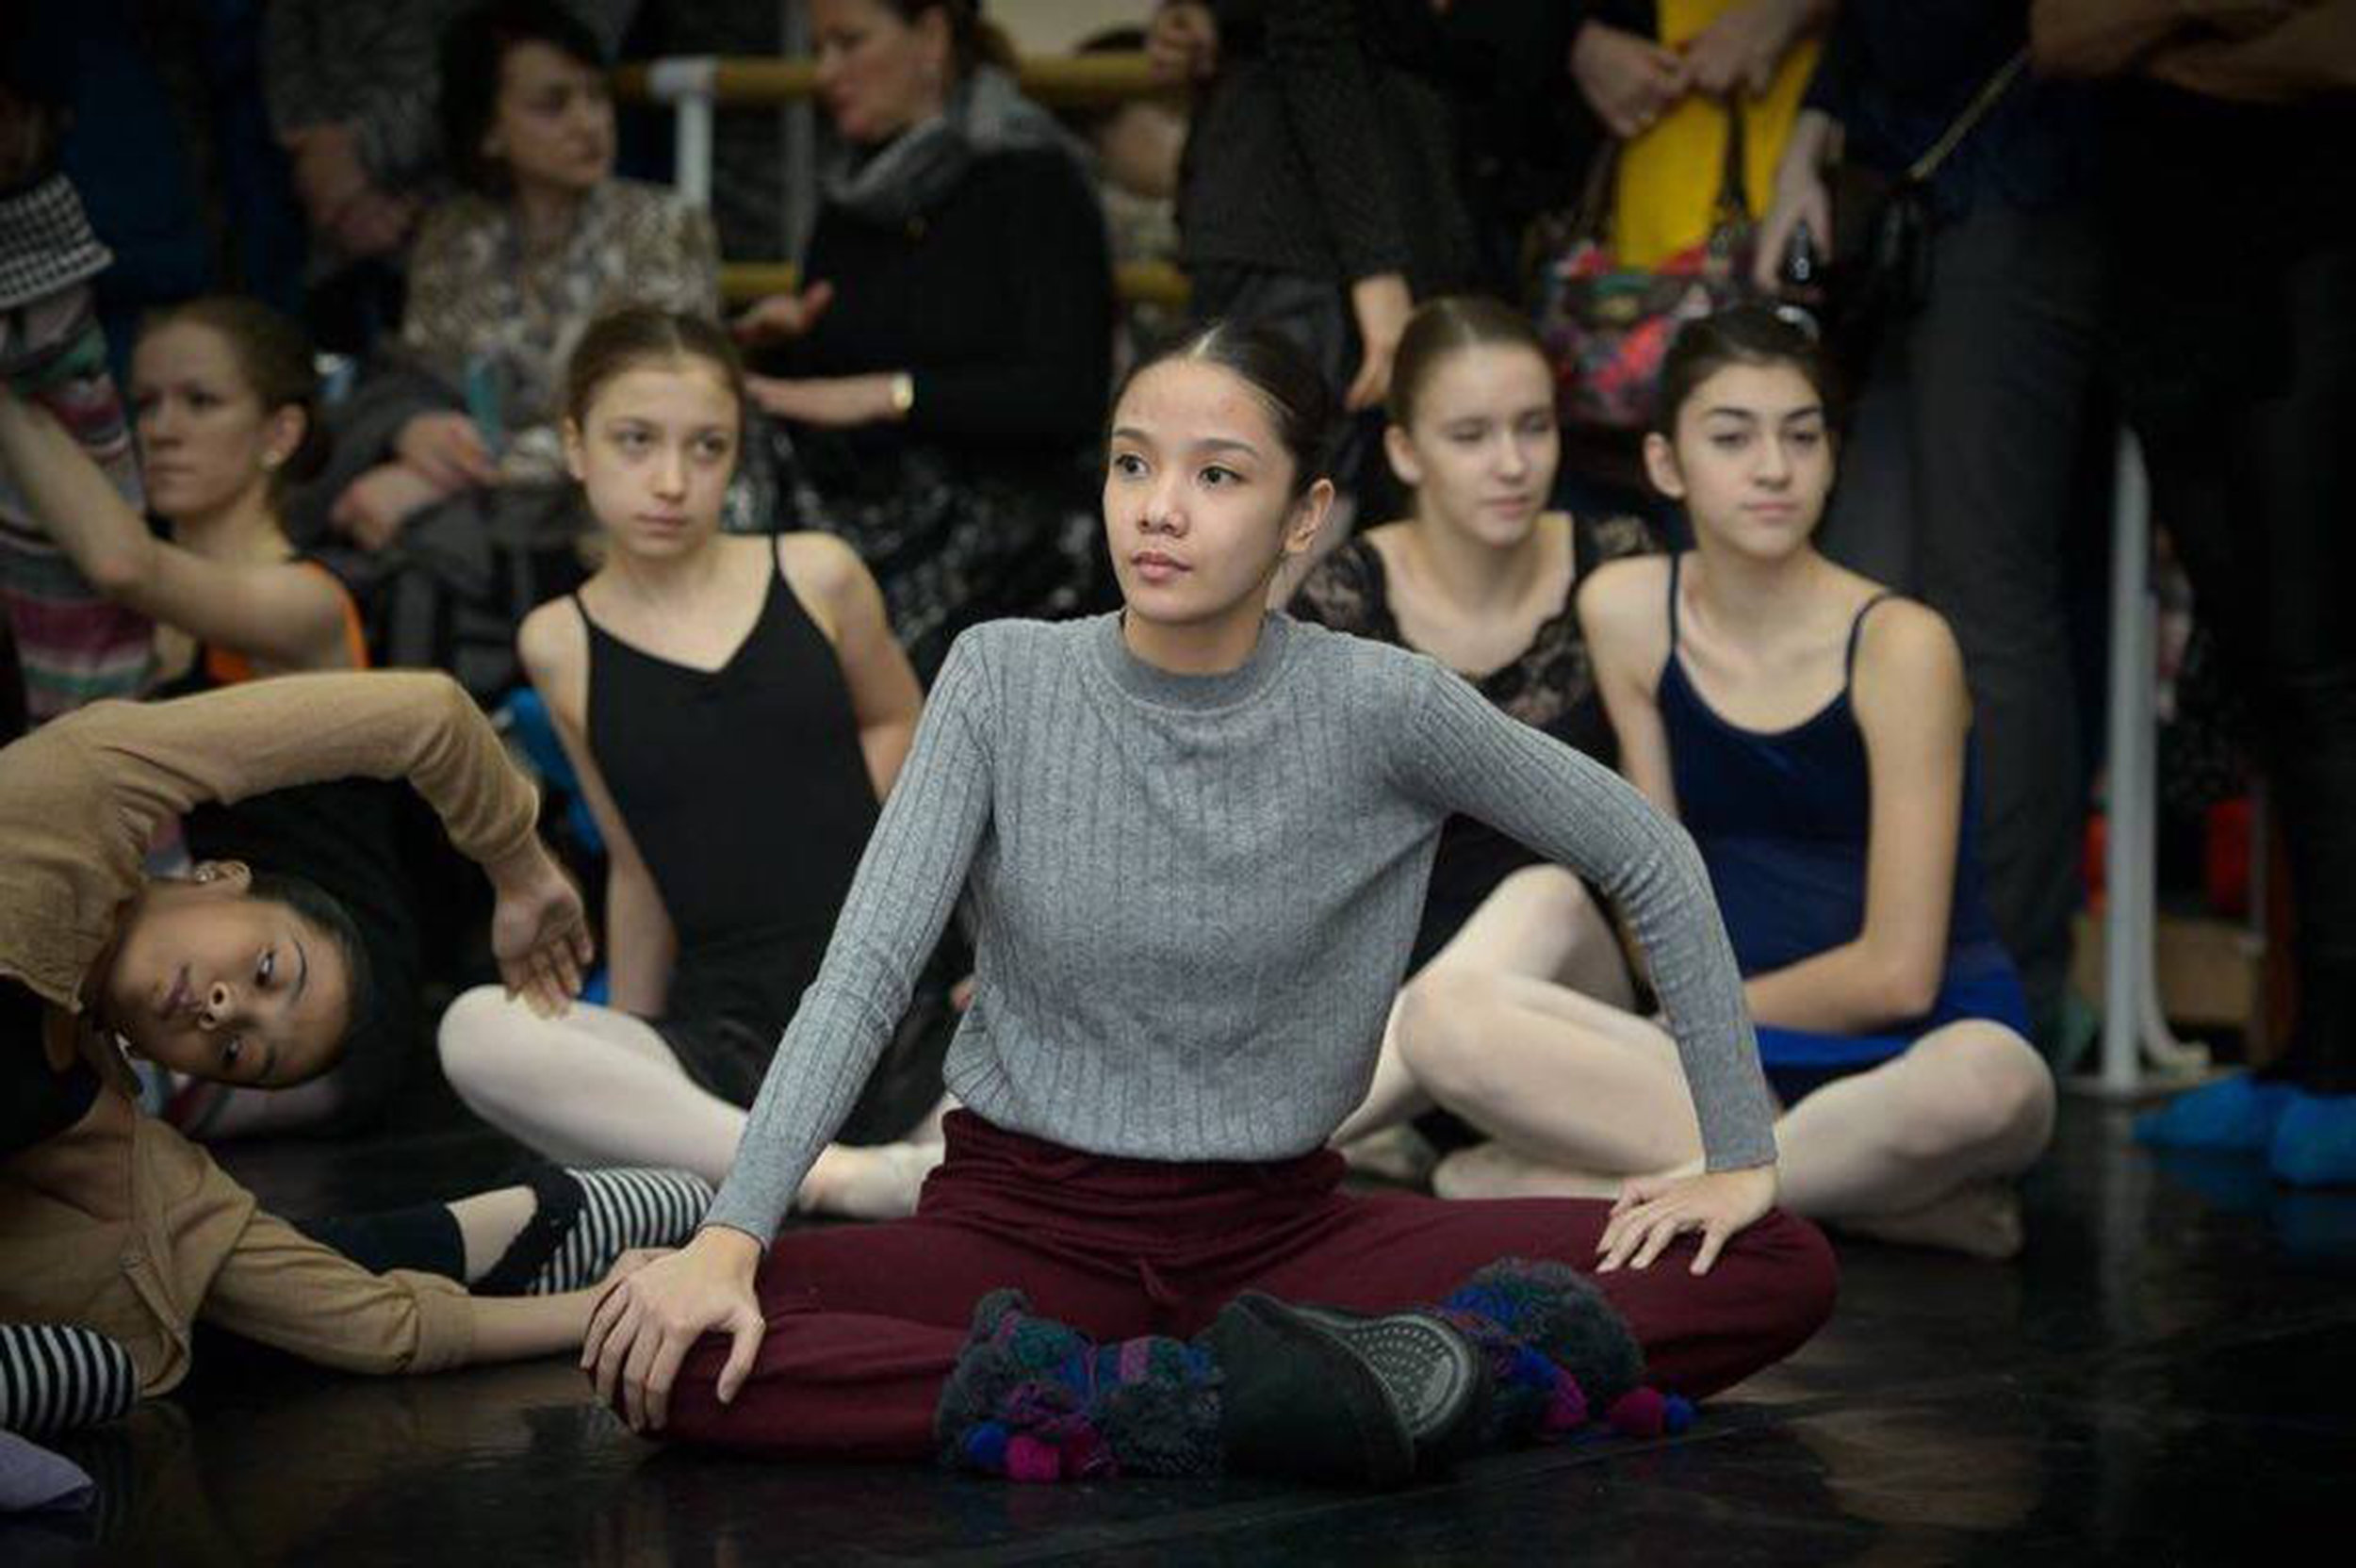 In Russia, Marinette attended dance classes and interacted with ballerinas from all over the world. Photo from Marinette Franco's Facebook page